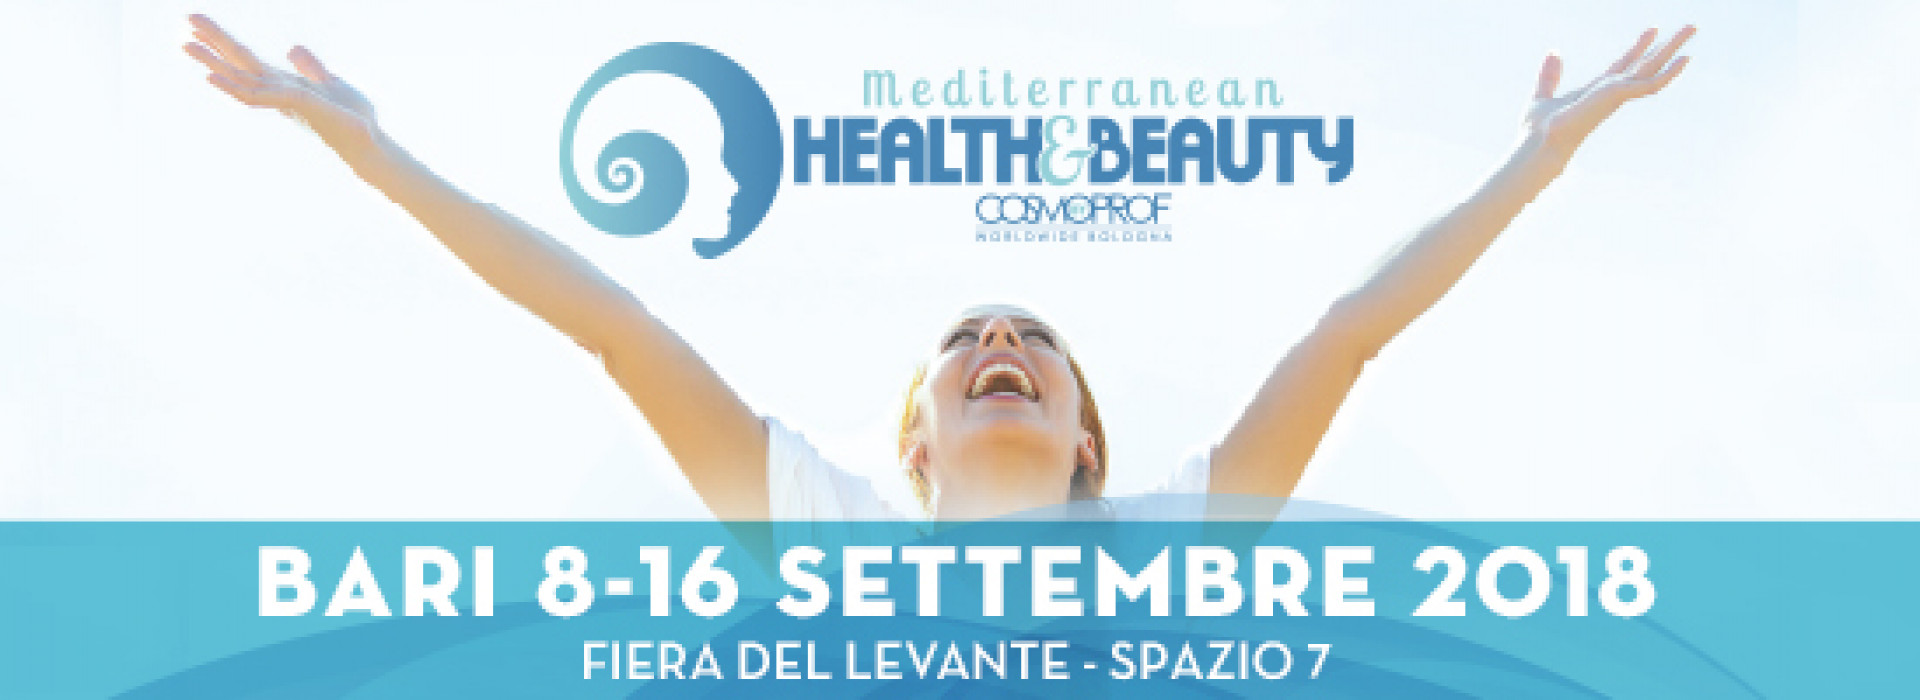 Mediterranean Health & Beauty